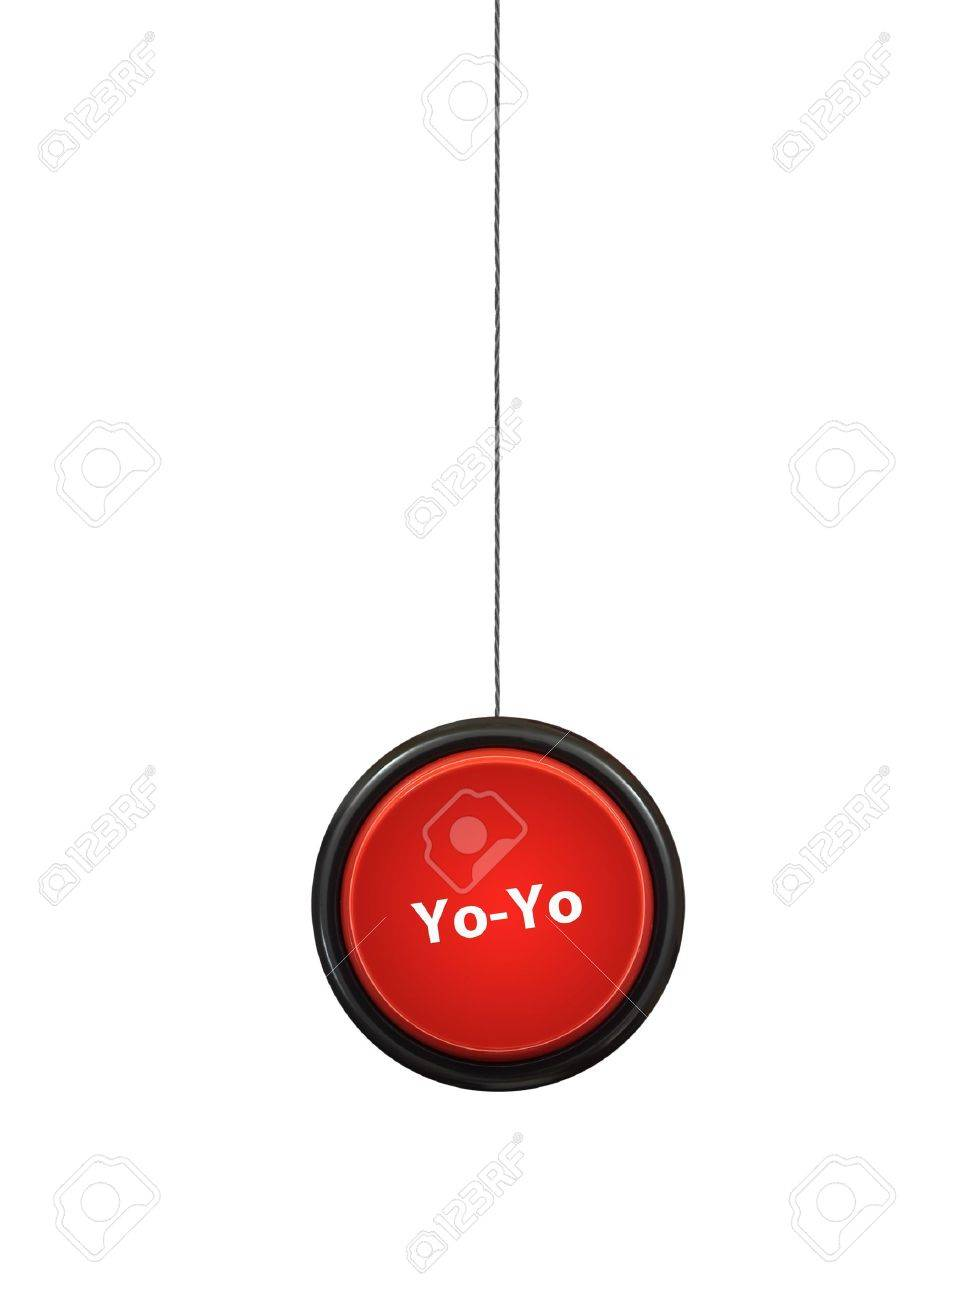 A toy yoyo isolated against a white background Stock Photo - 14782966